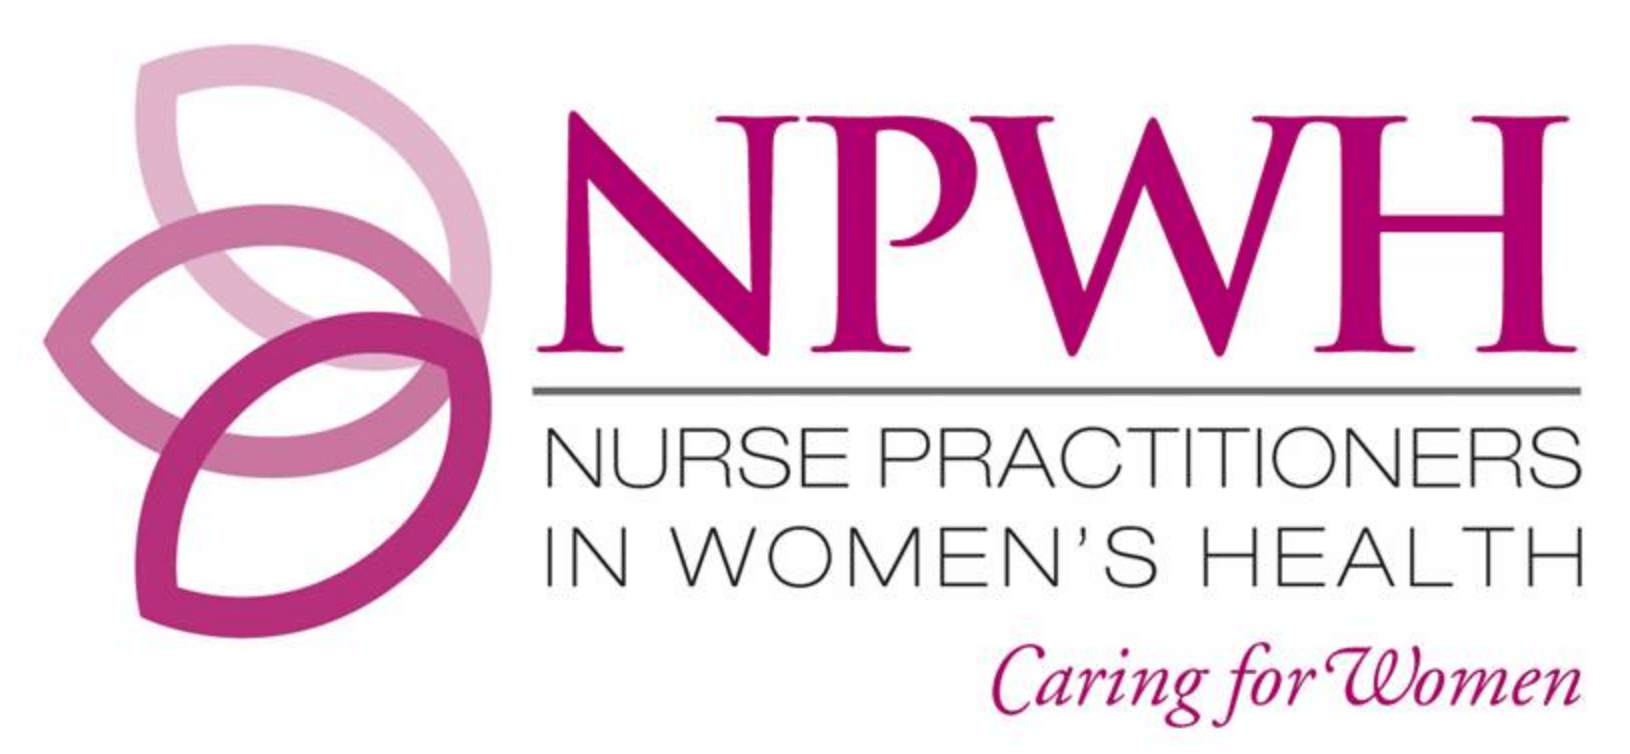 National Association of Nurse Practitioners in Women's Health